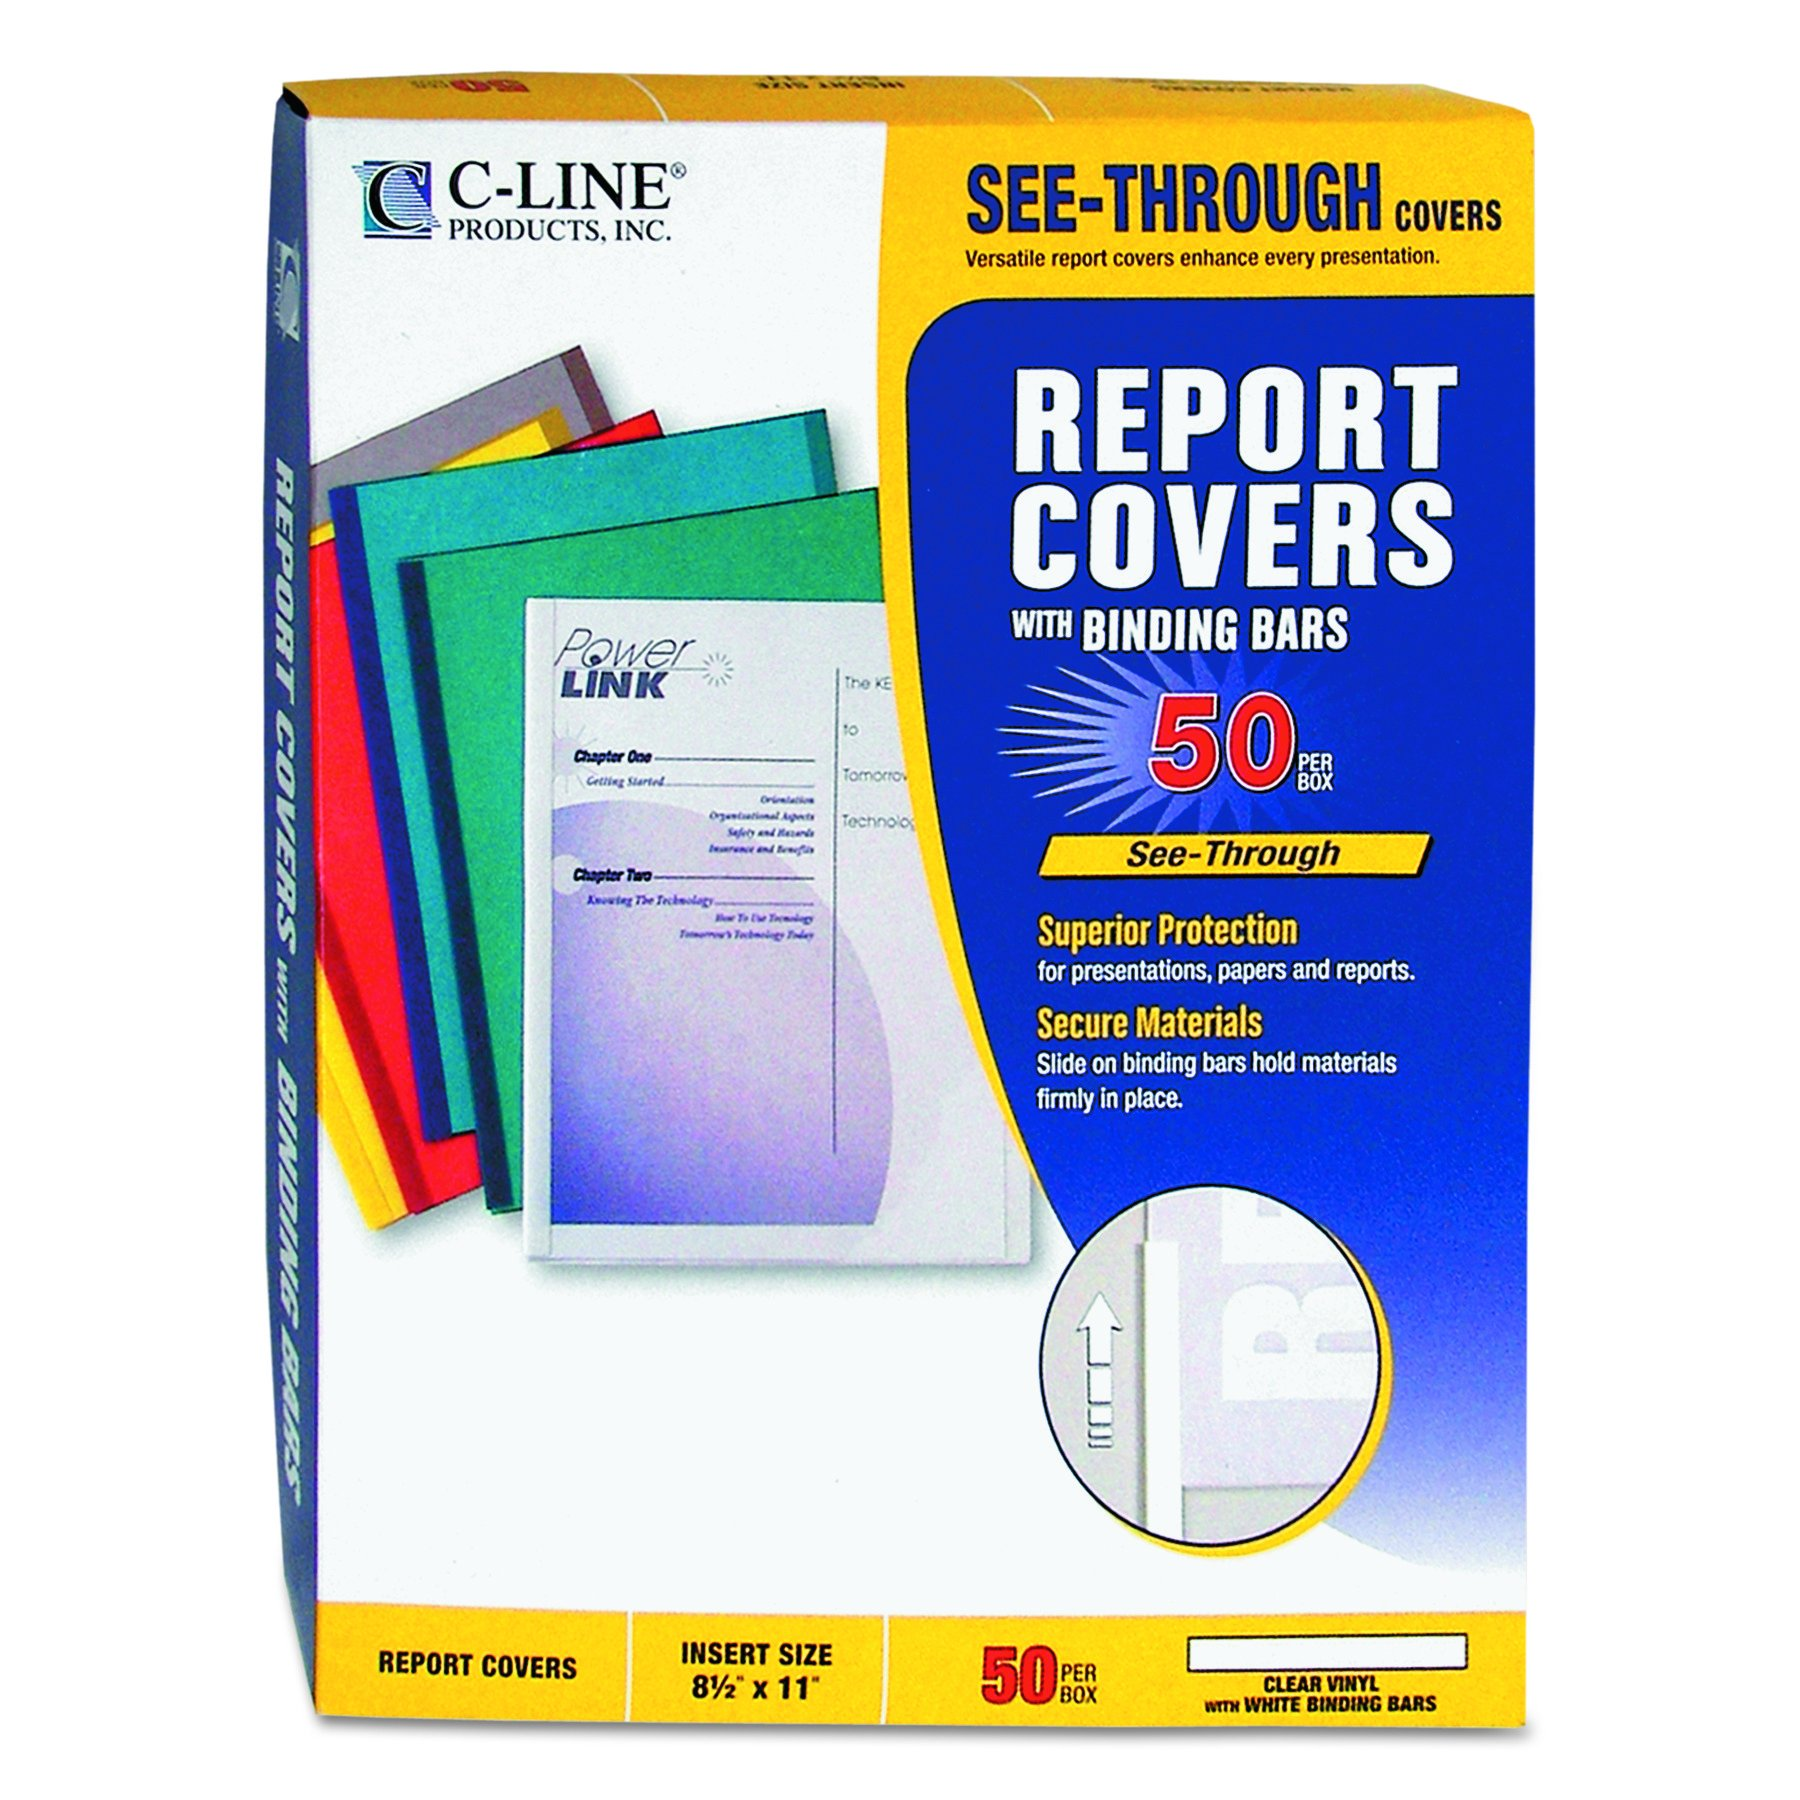 C-Line Report Covers with Binding Bars, Clear Vinyl, White Bars, 8.5 x 11 Inches, 50 per Box (32557) by C-Line (Image #4)